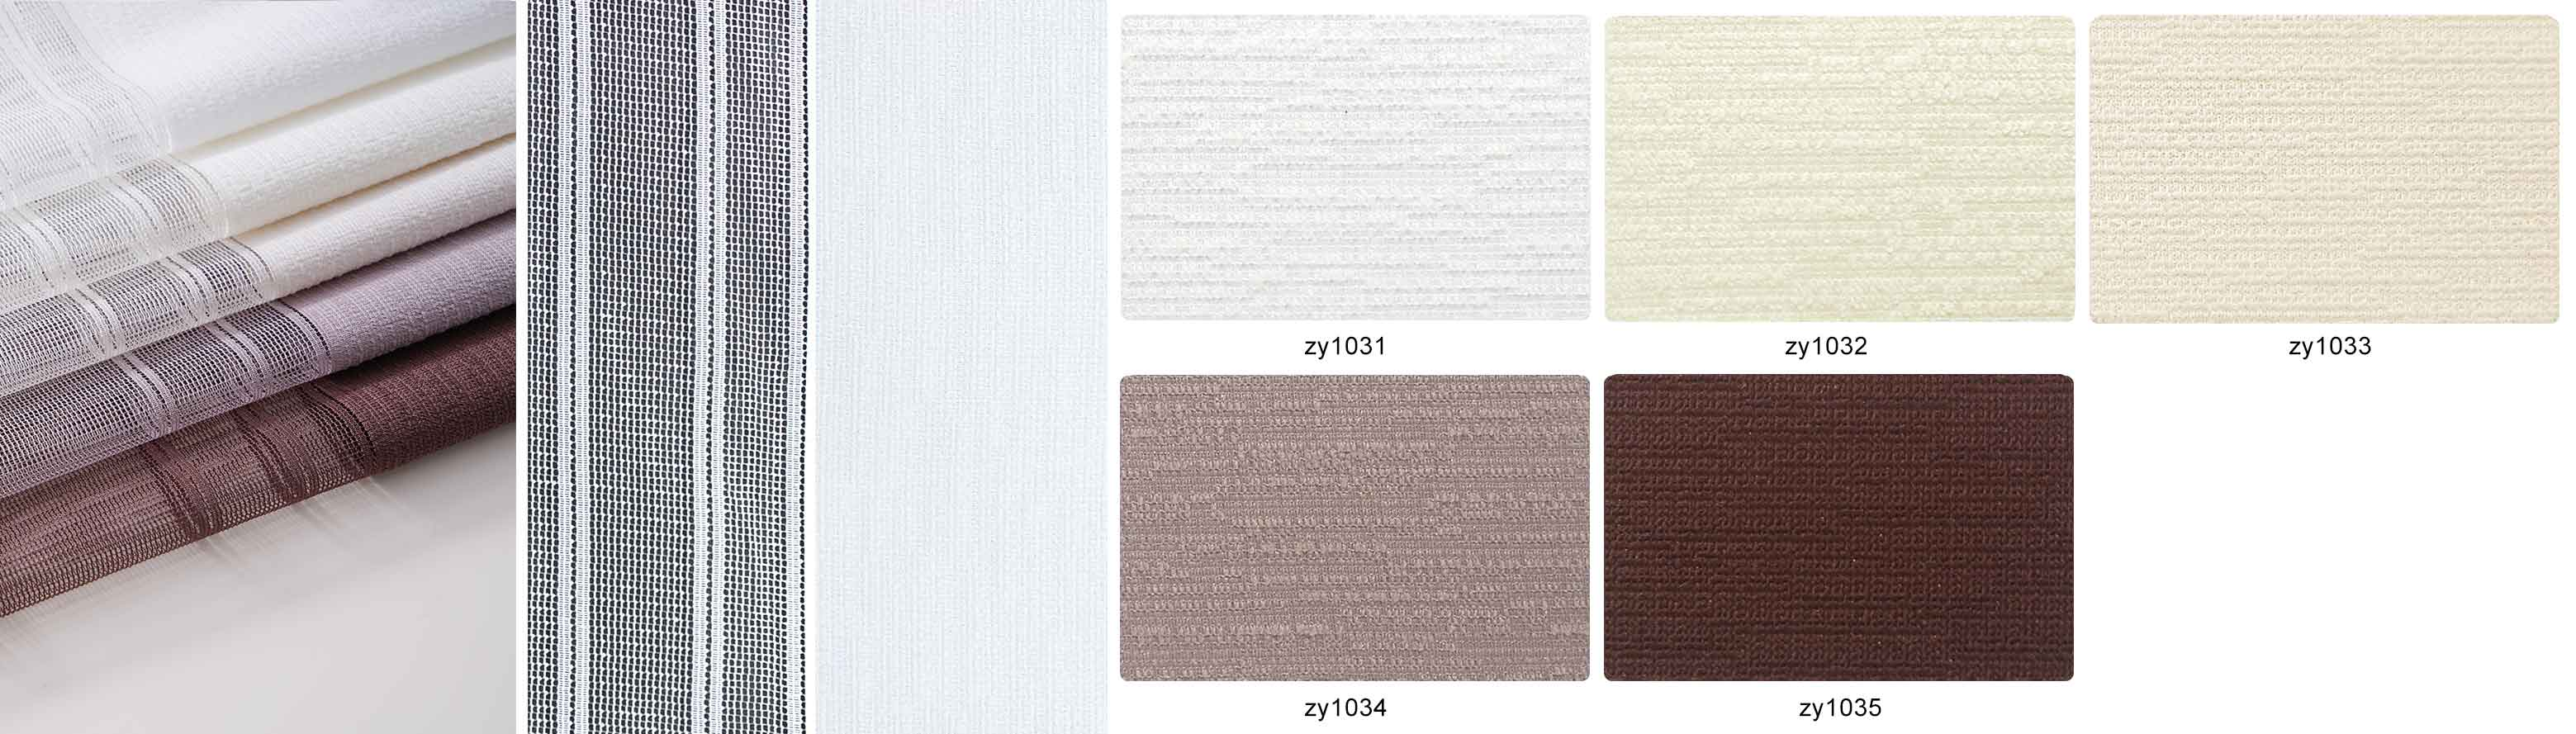 Jiejia vertical blinds window coverings-8